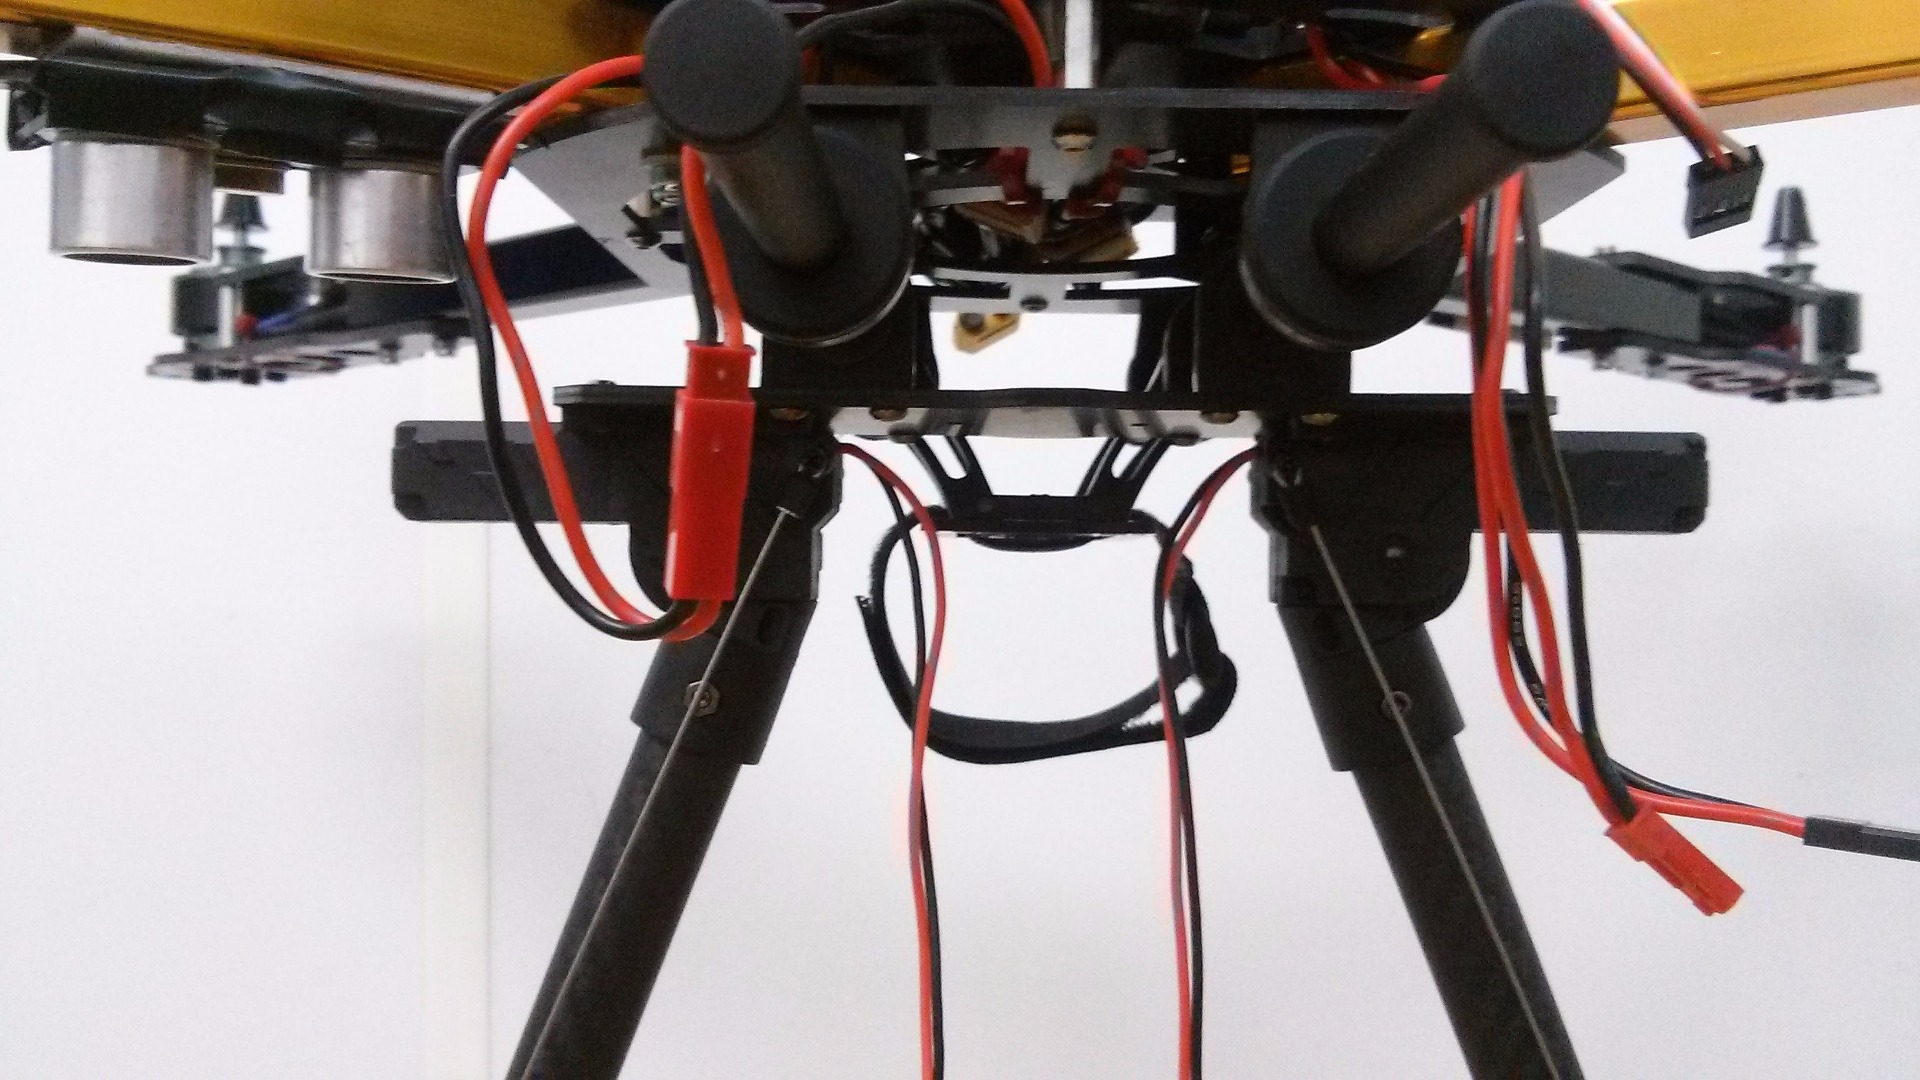 Picture of Mounting the Landing Gear Onto the Drone Frame